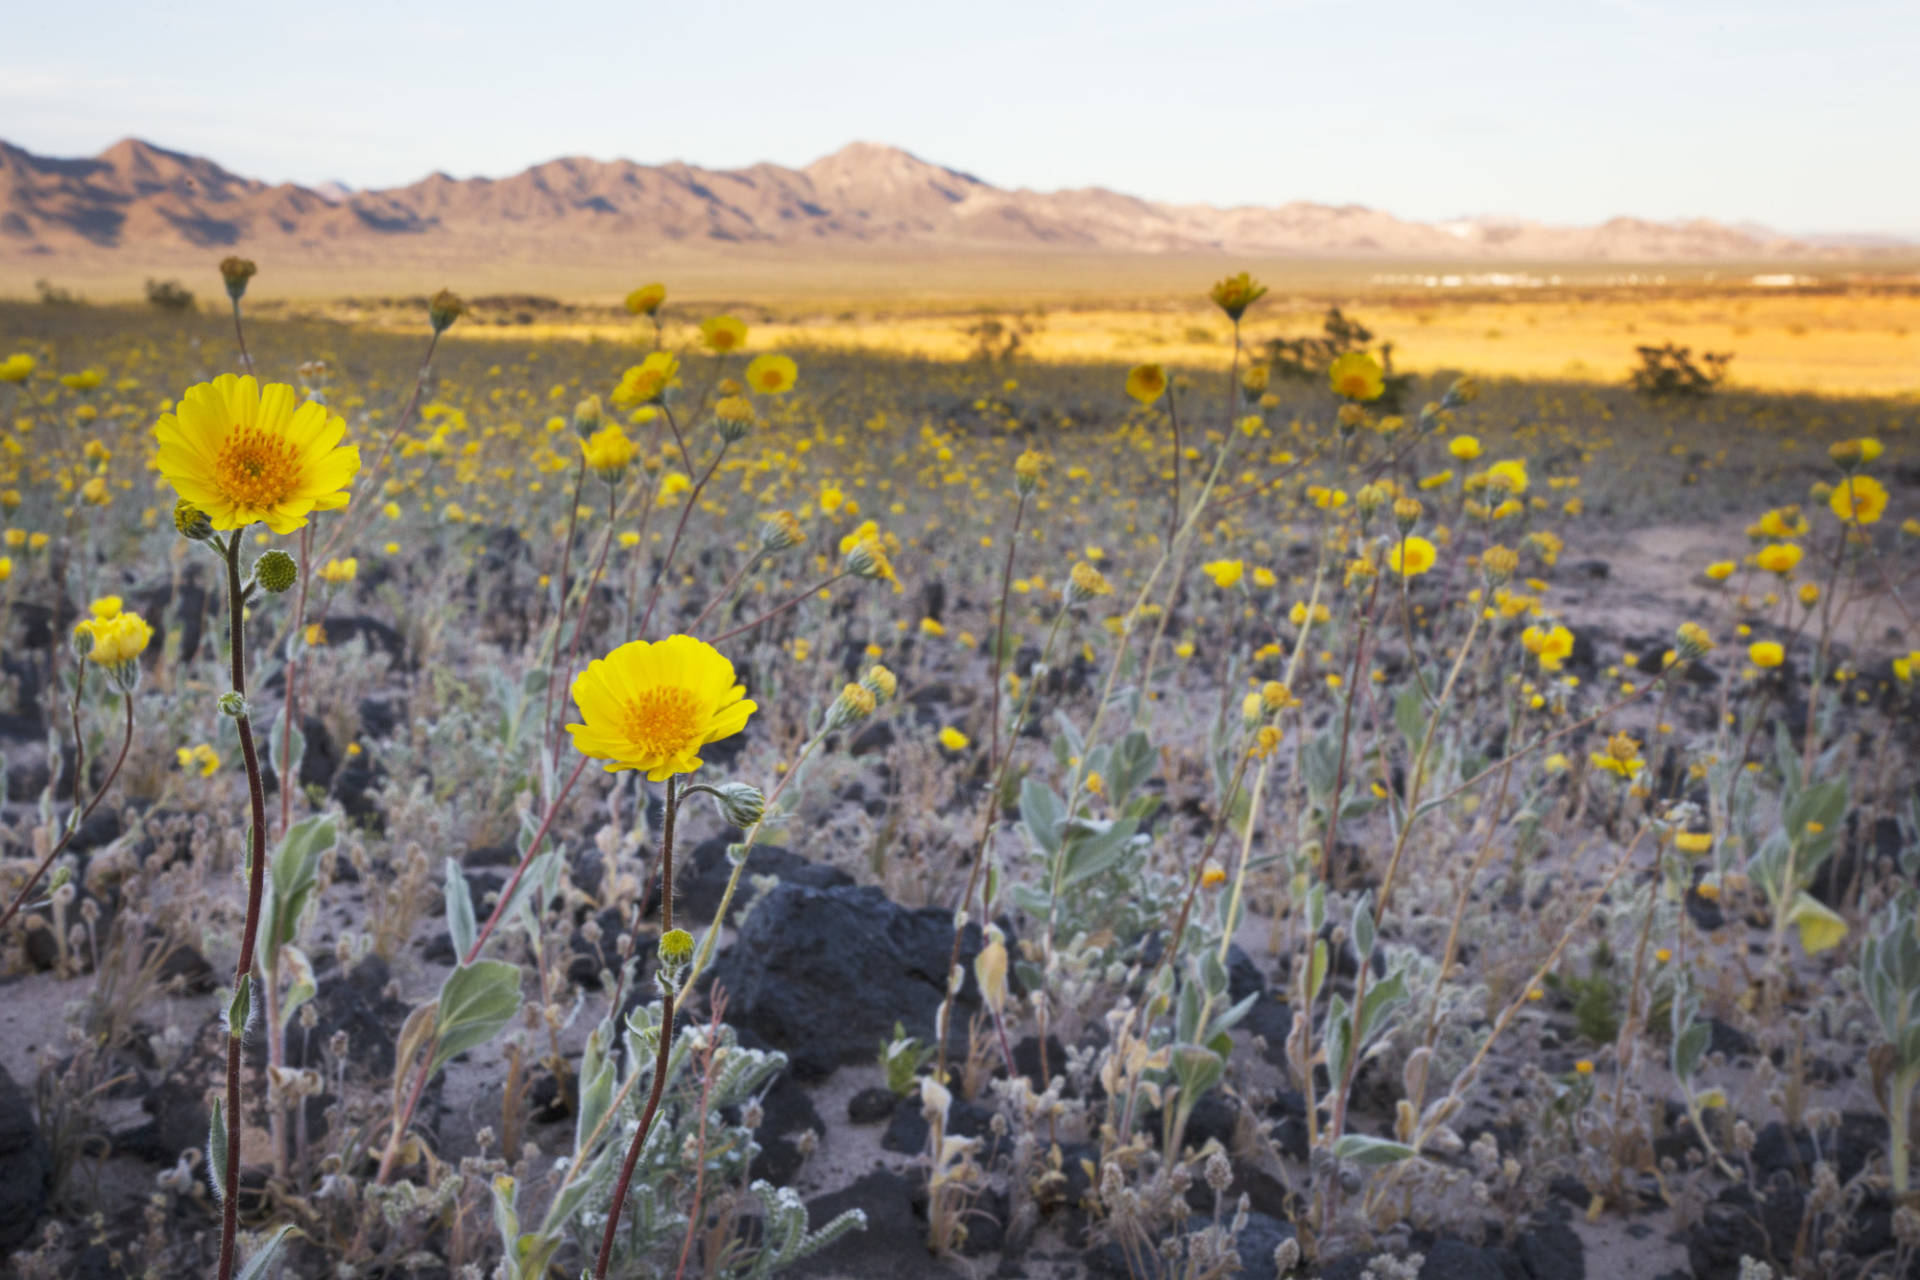 The usually barren desert is covered in acres of desert gold and desert dandelion because of this year's superbloom happening at the Amboy Crater National Natural Landmark in the Mojave Desert. Sarah Craig/KQED